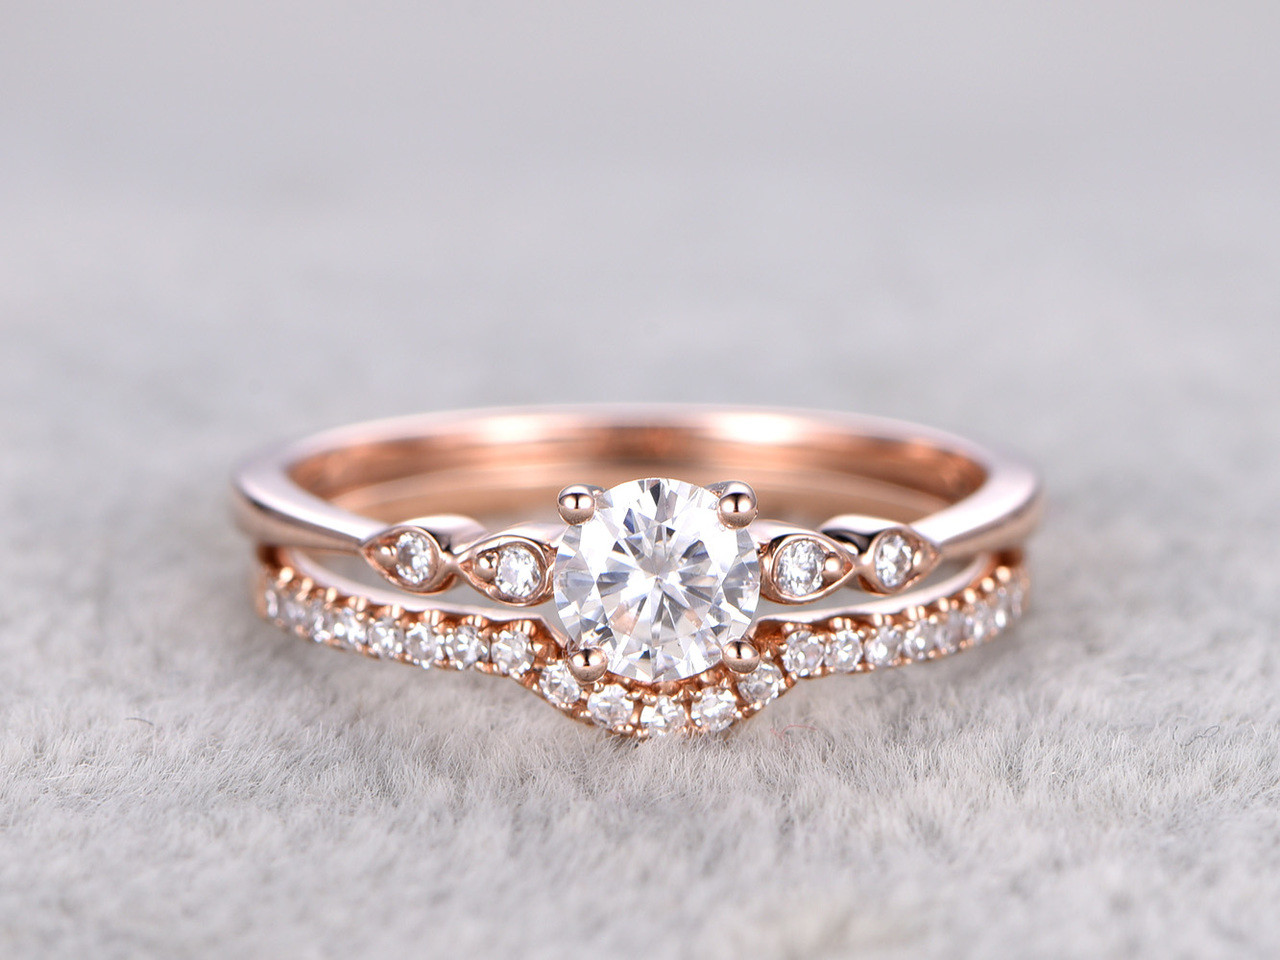 Replacement Diamond For Wedding Ring